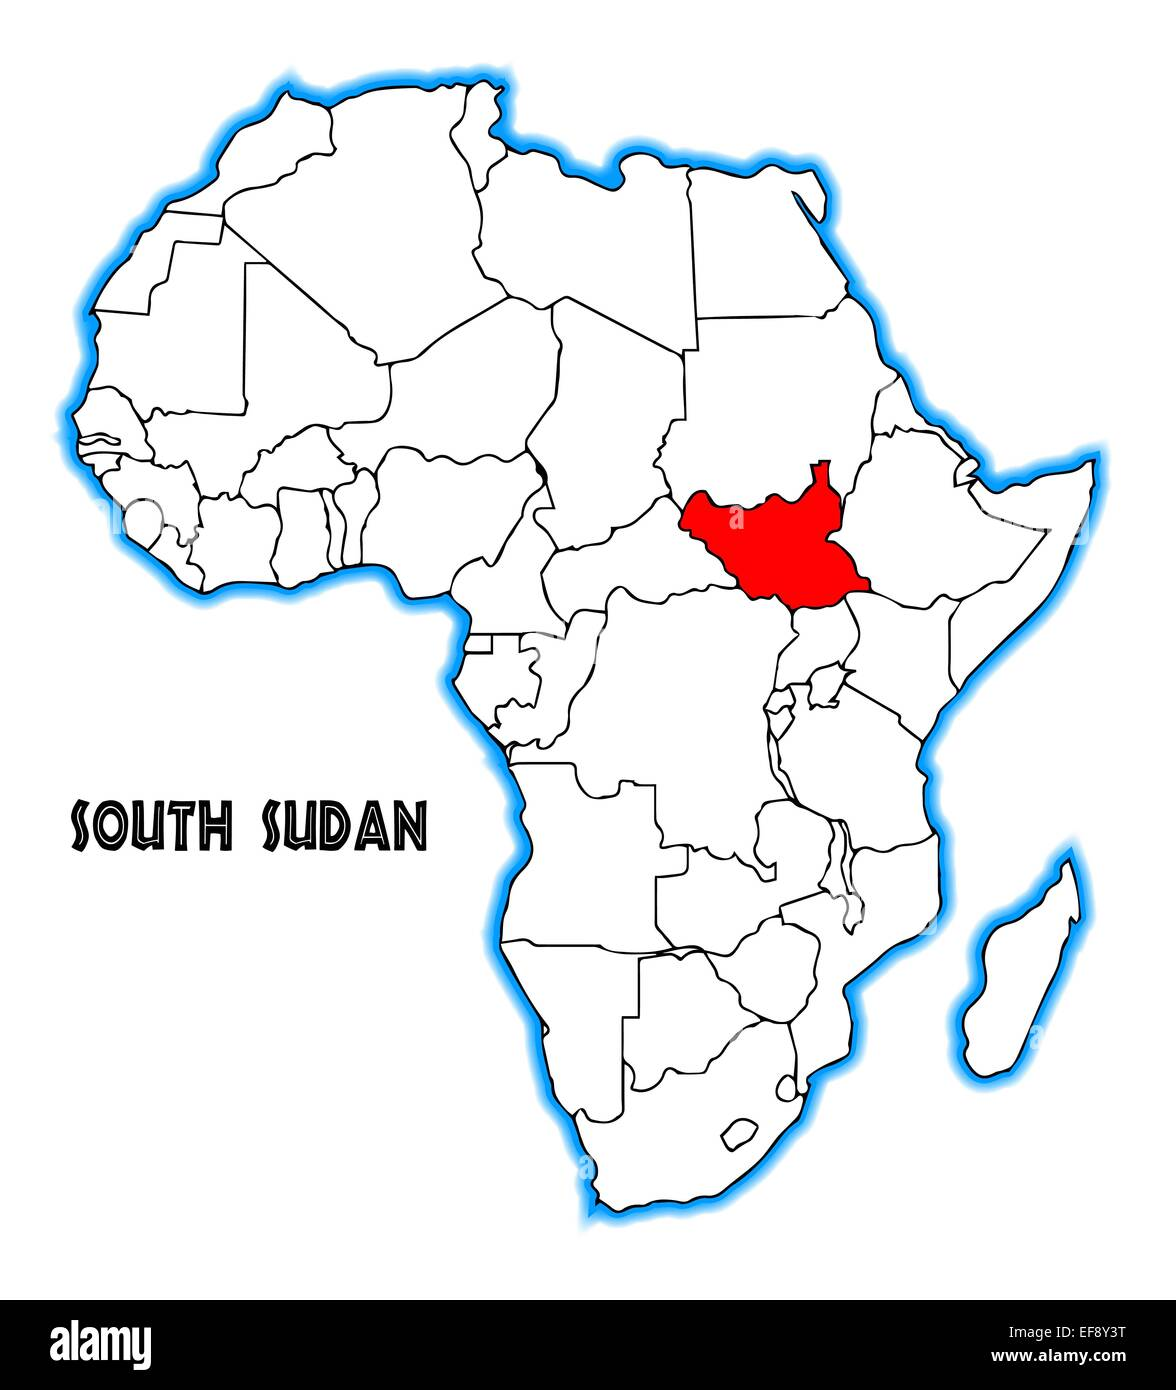 sudan map in africa South Sudan Outline Inset Into A Map Of Africa Over A White Stock sudan map in africa